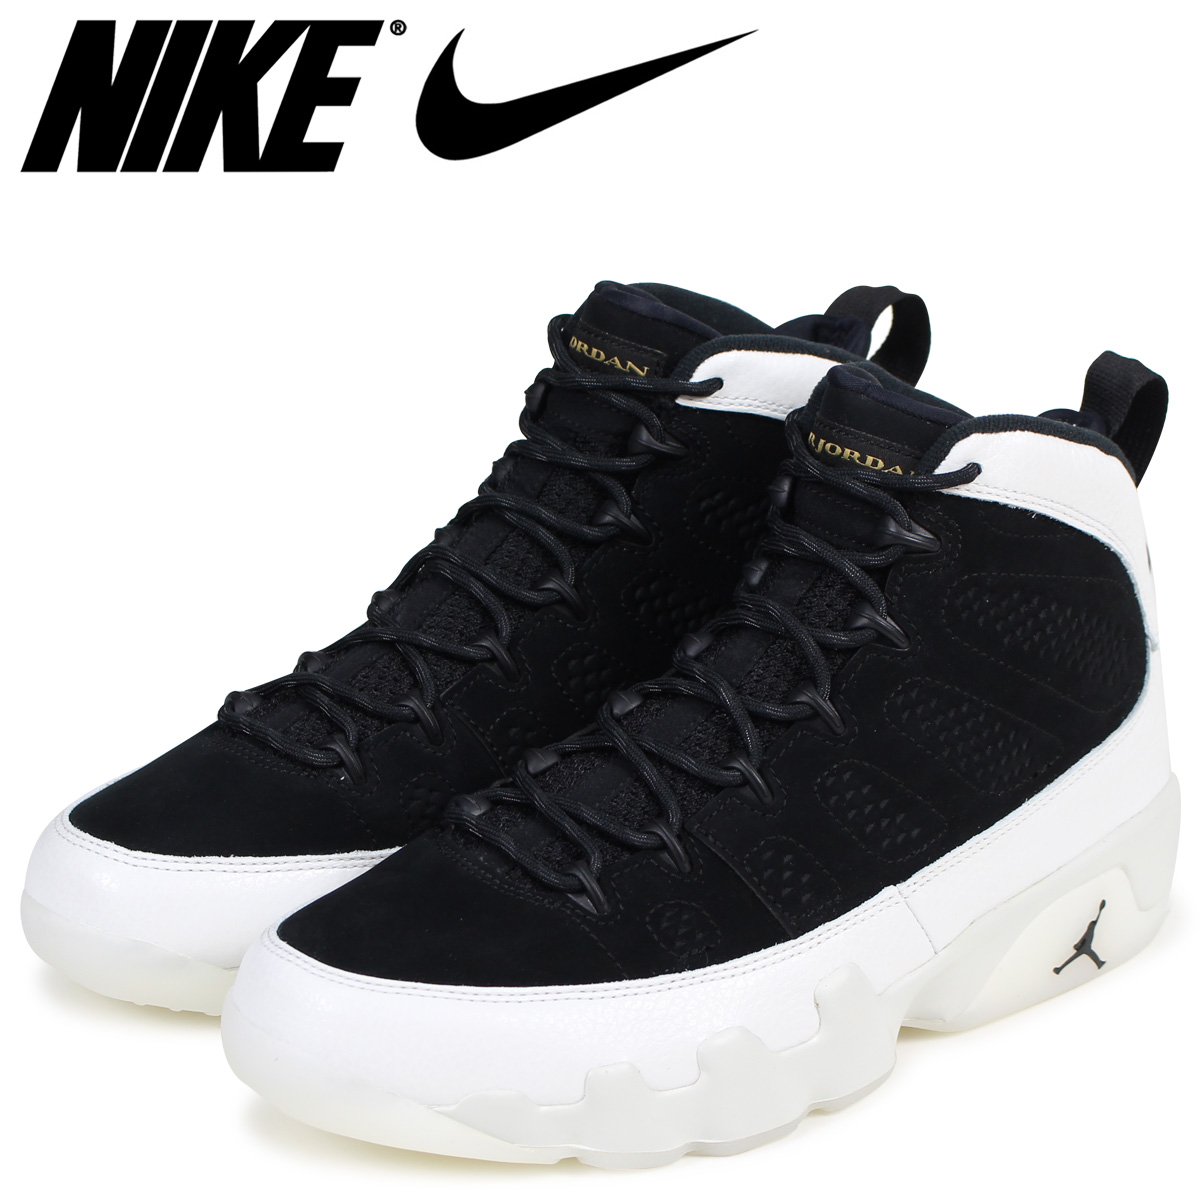 f60aebe6a474ca NIKE Nike Air Jordan 9 nostalgic sneakers men AIR JORDAN 9 RETRO CITY OF  FLIGHT 302